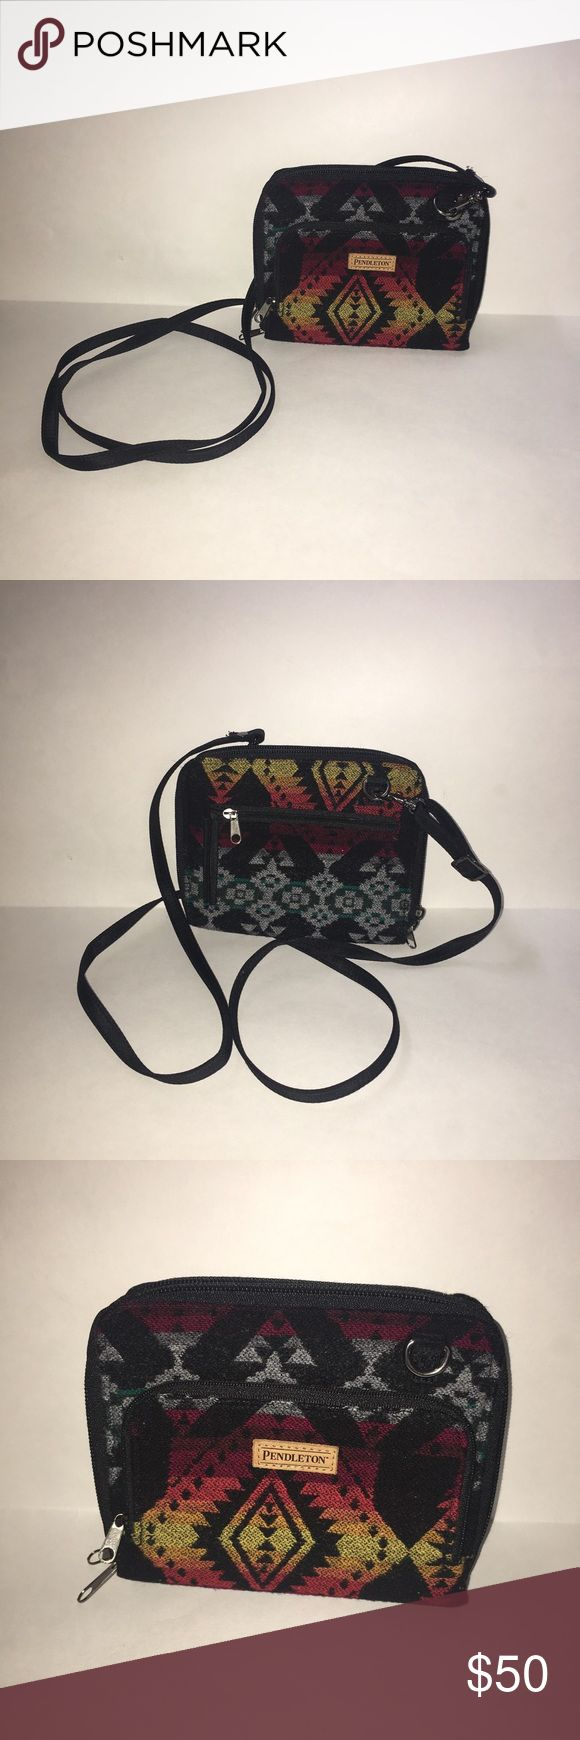 Pendleton Wallet Crossbody Bag Pendleton Wallet Crossbody Bag for sale.   Good condition.   Awesome design.   Perfect everyday bag.   Great for travel! Pendleton Bags Crossbody Bags